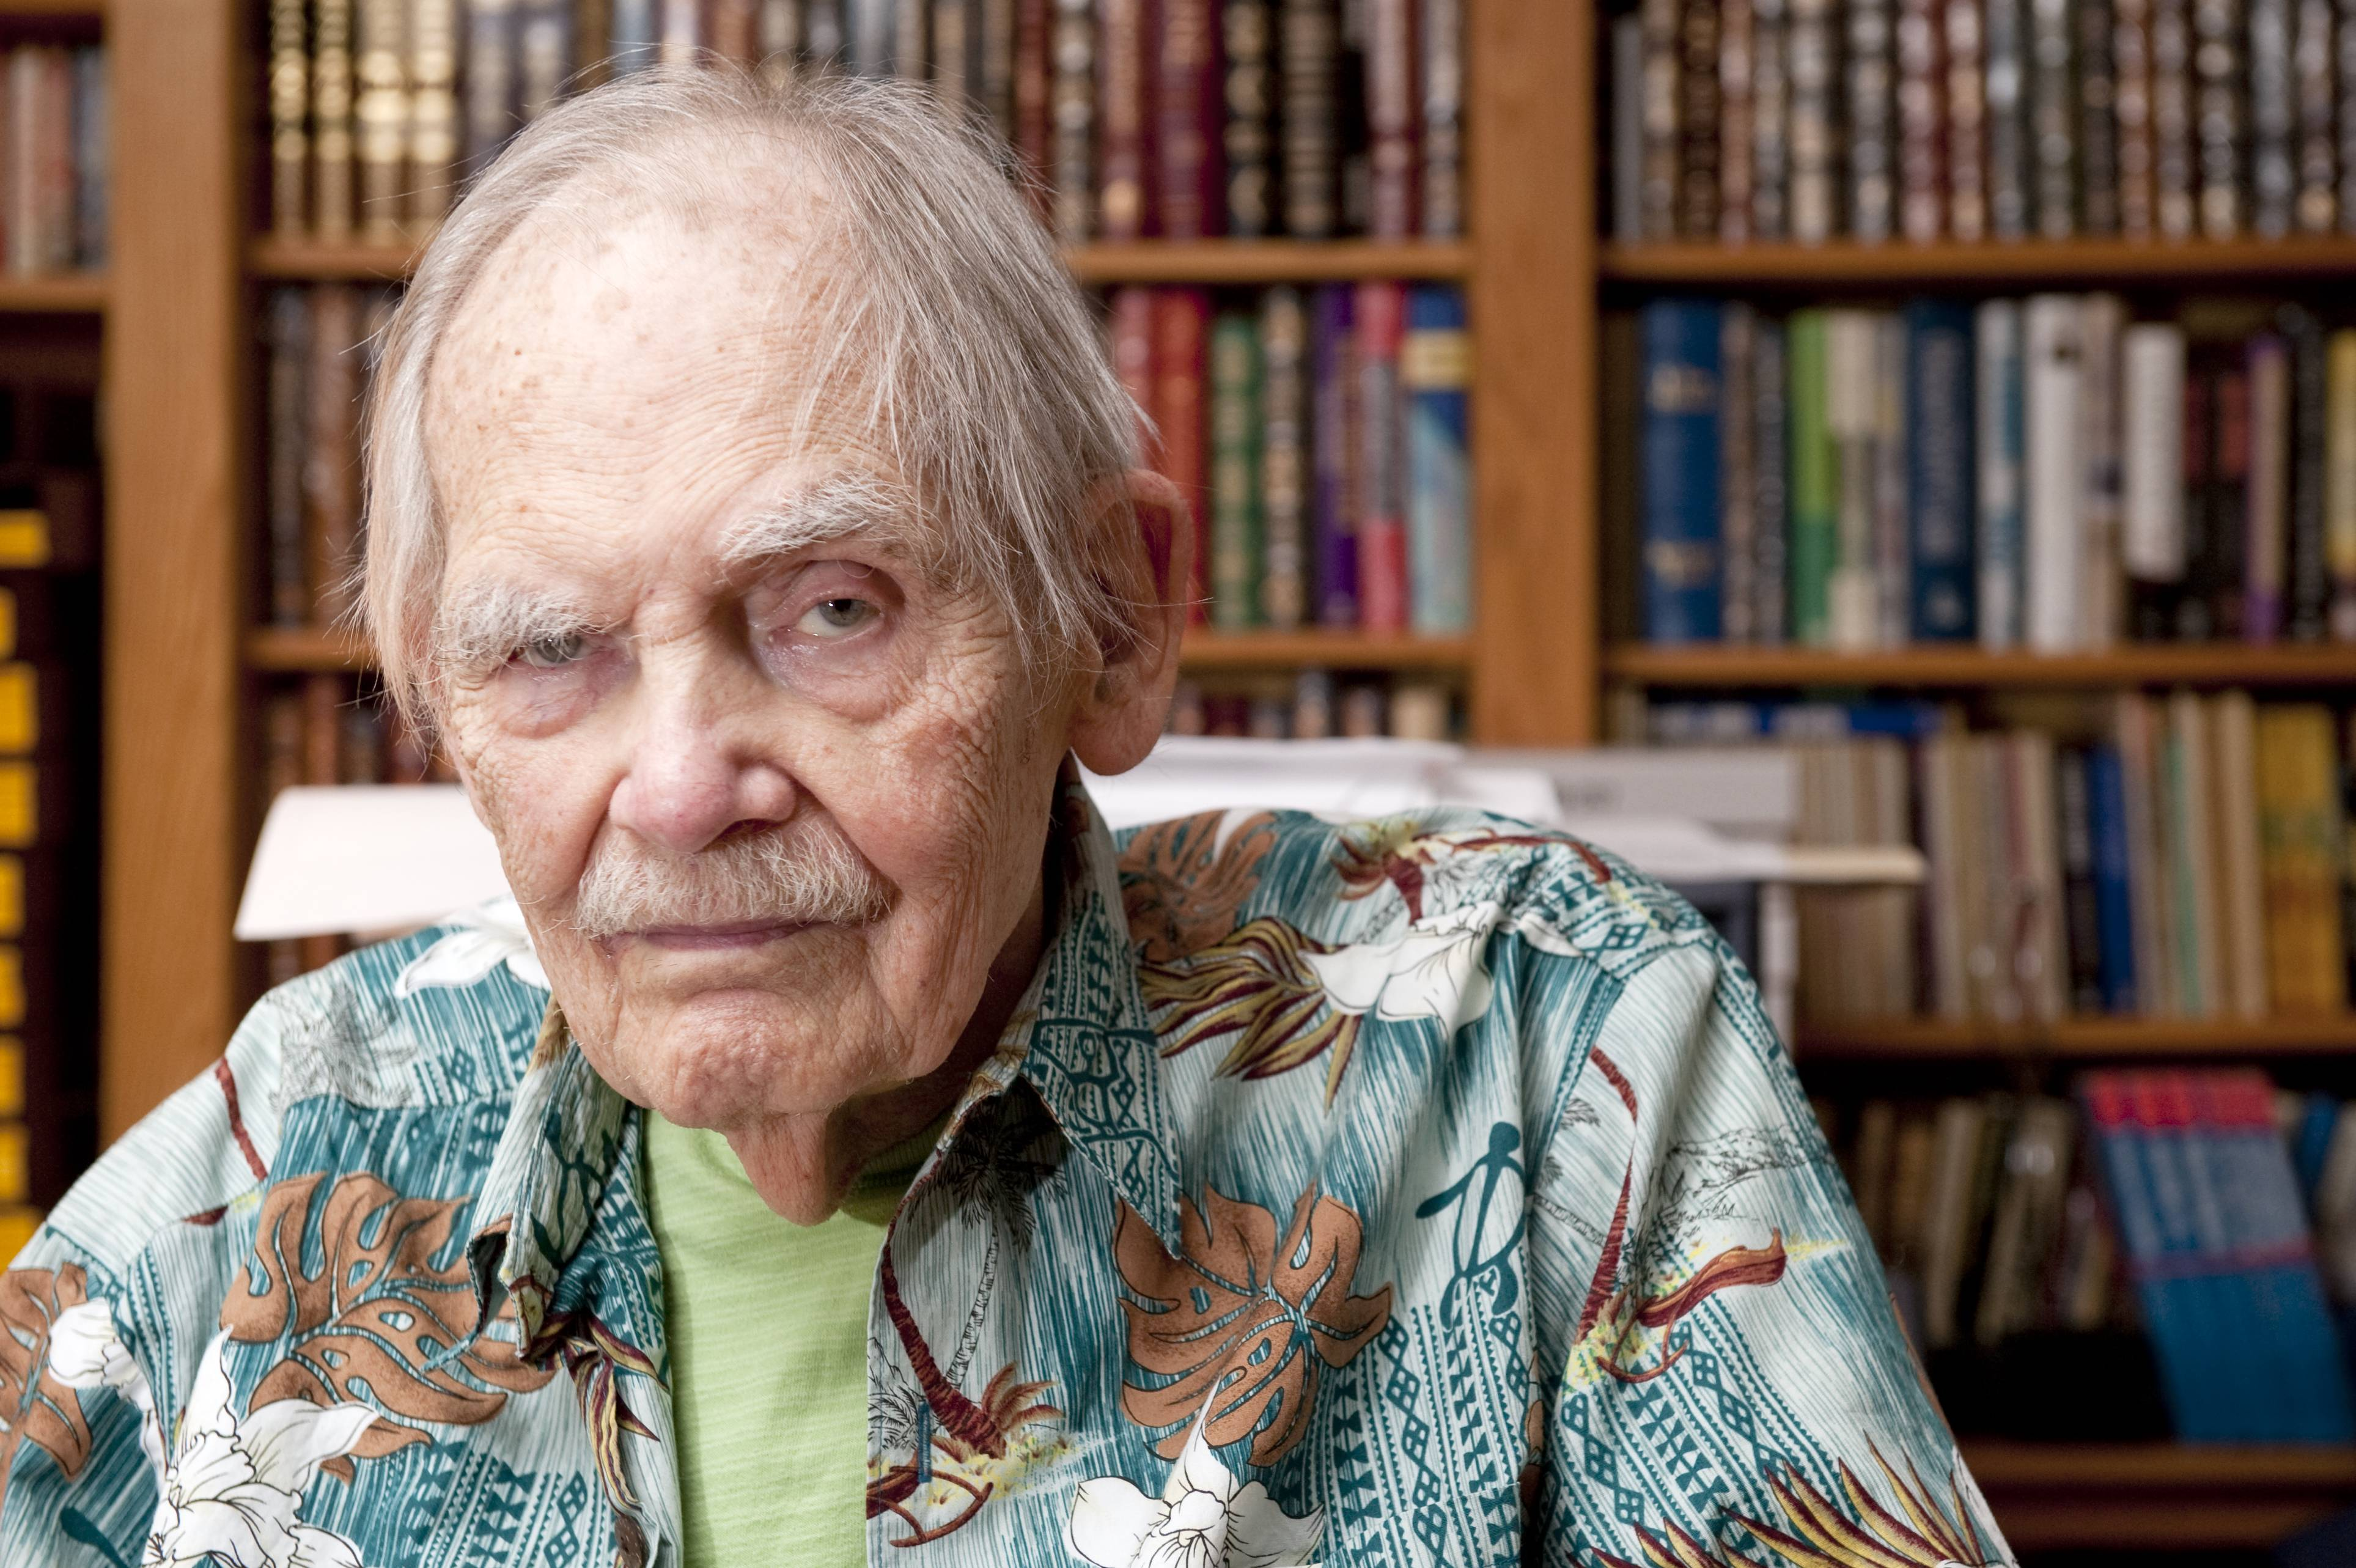 A memorial service for acclaimed science fiction writer, and longtime Palatine resident, Frederik Pohl will take place Aug. 2 at Harper College.